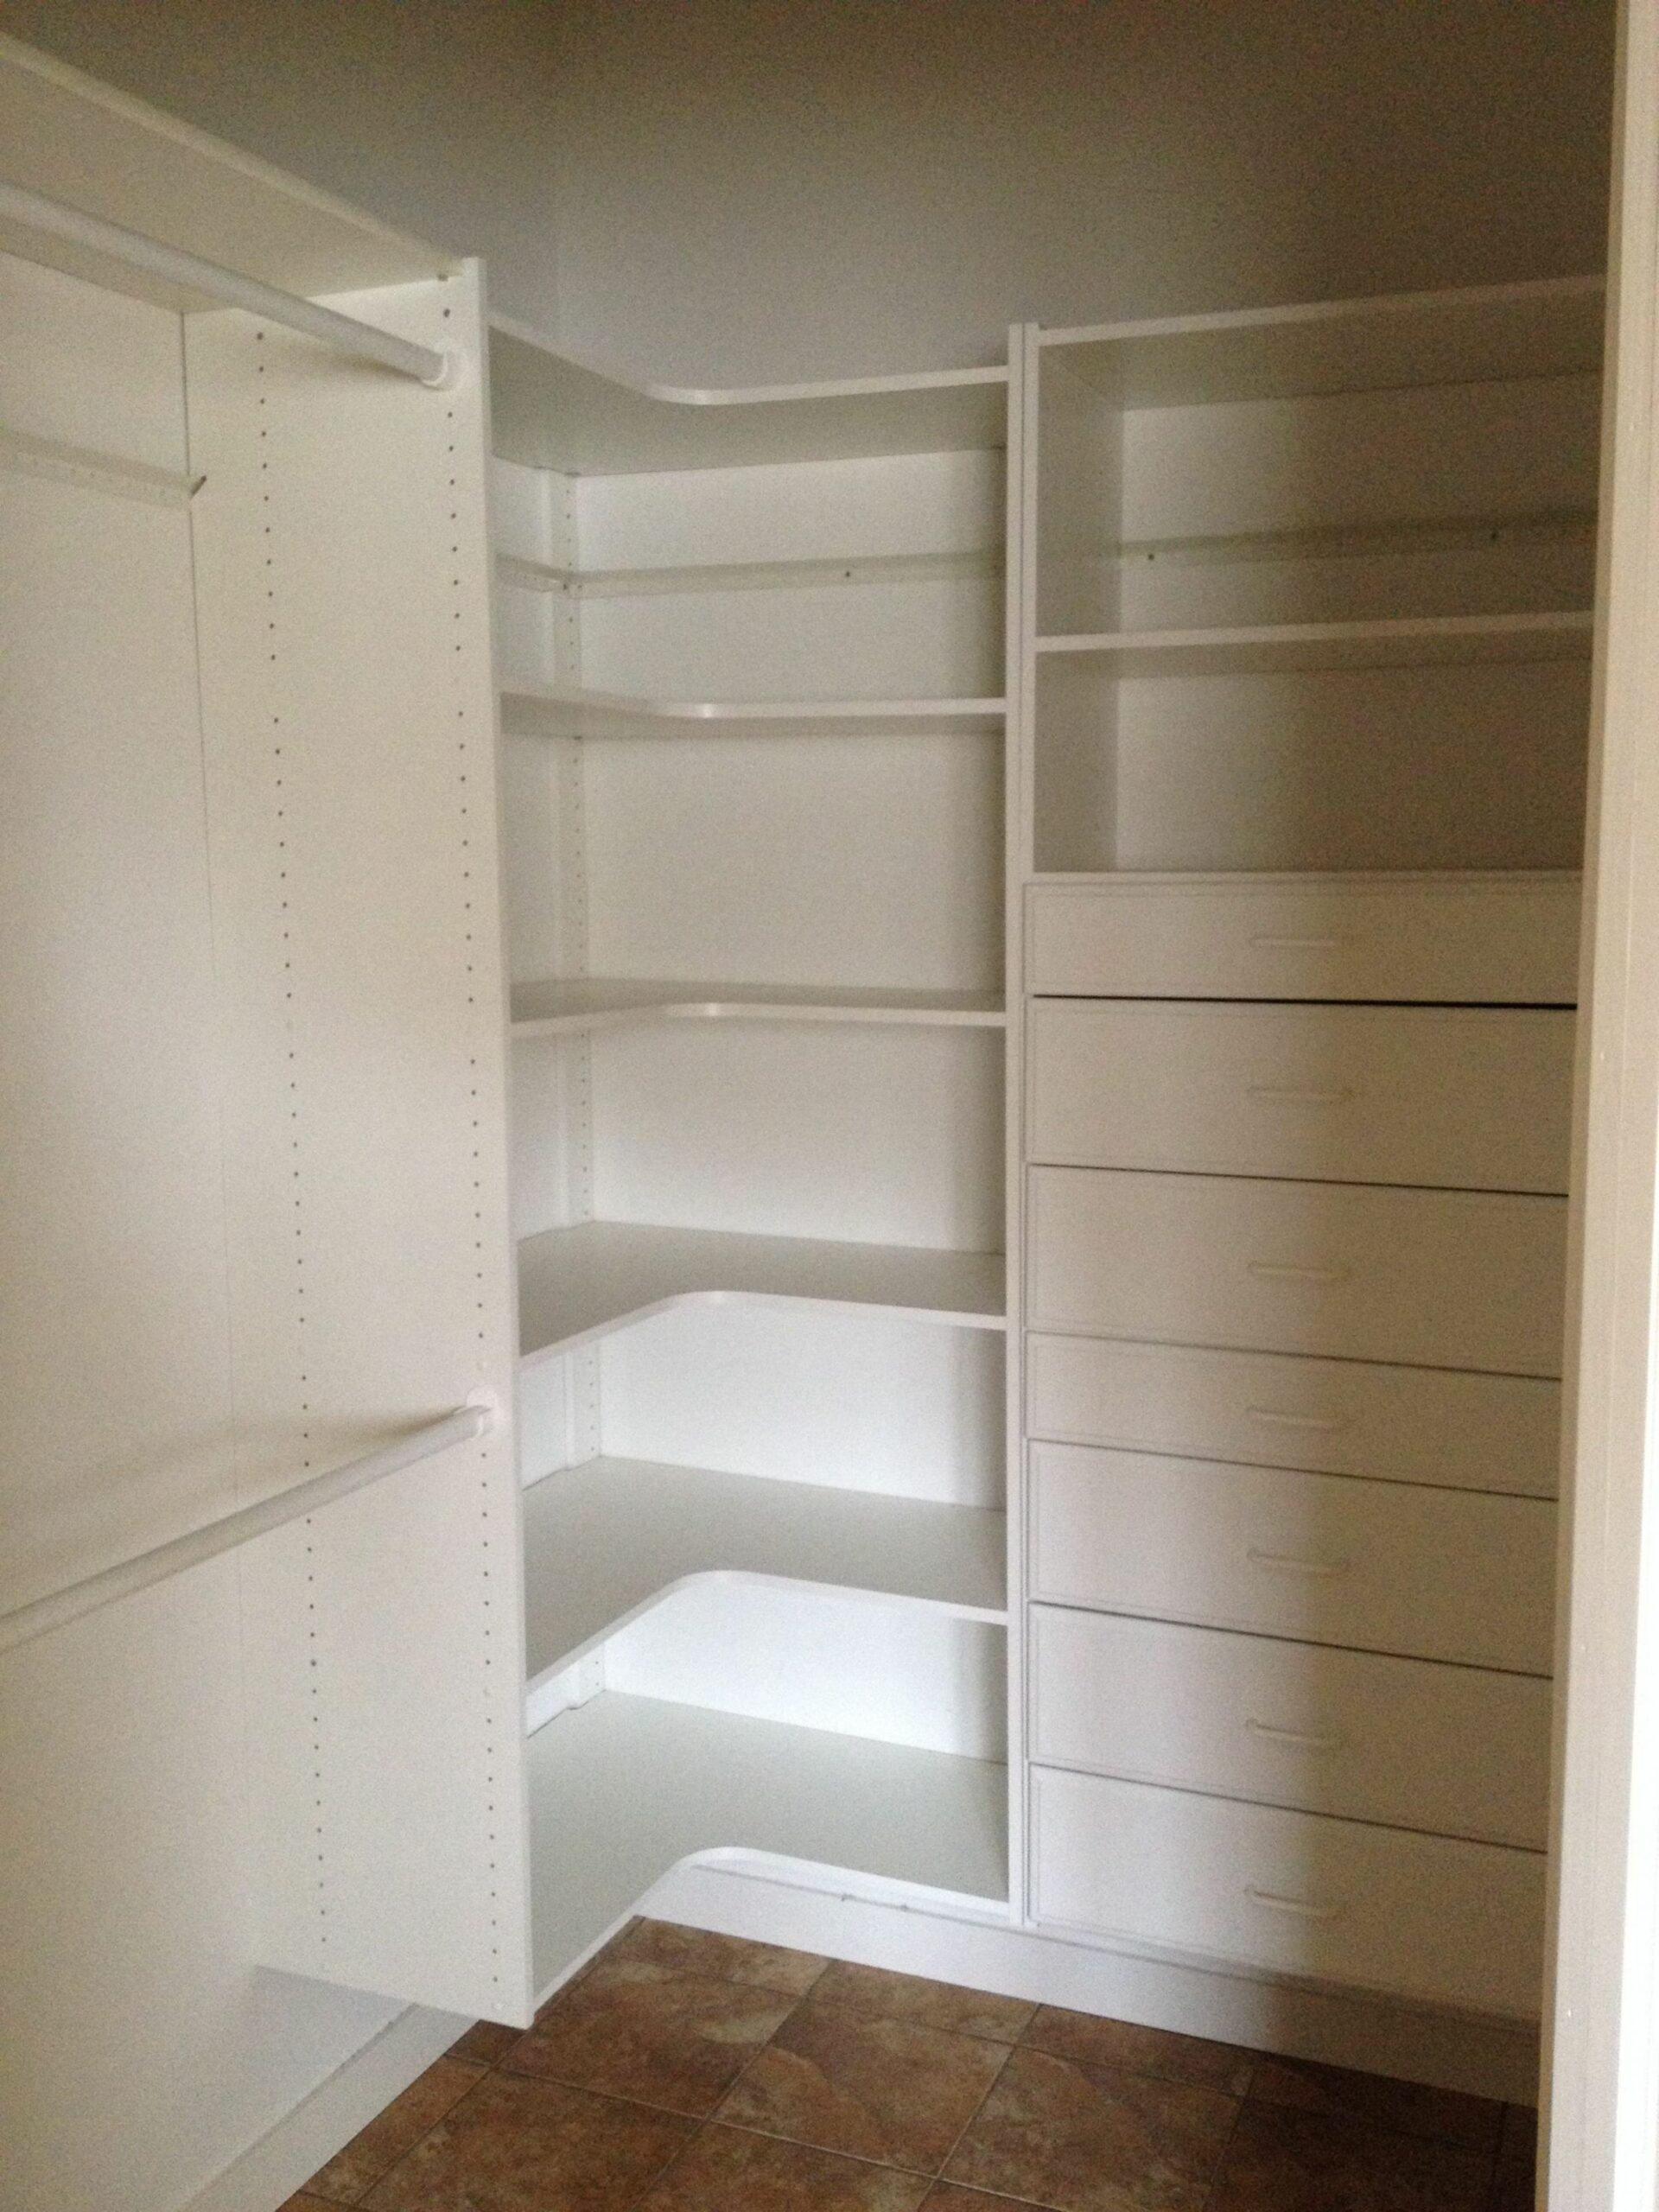 Master bedroom walk-in closet idea for maximum storage and space ..